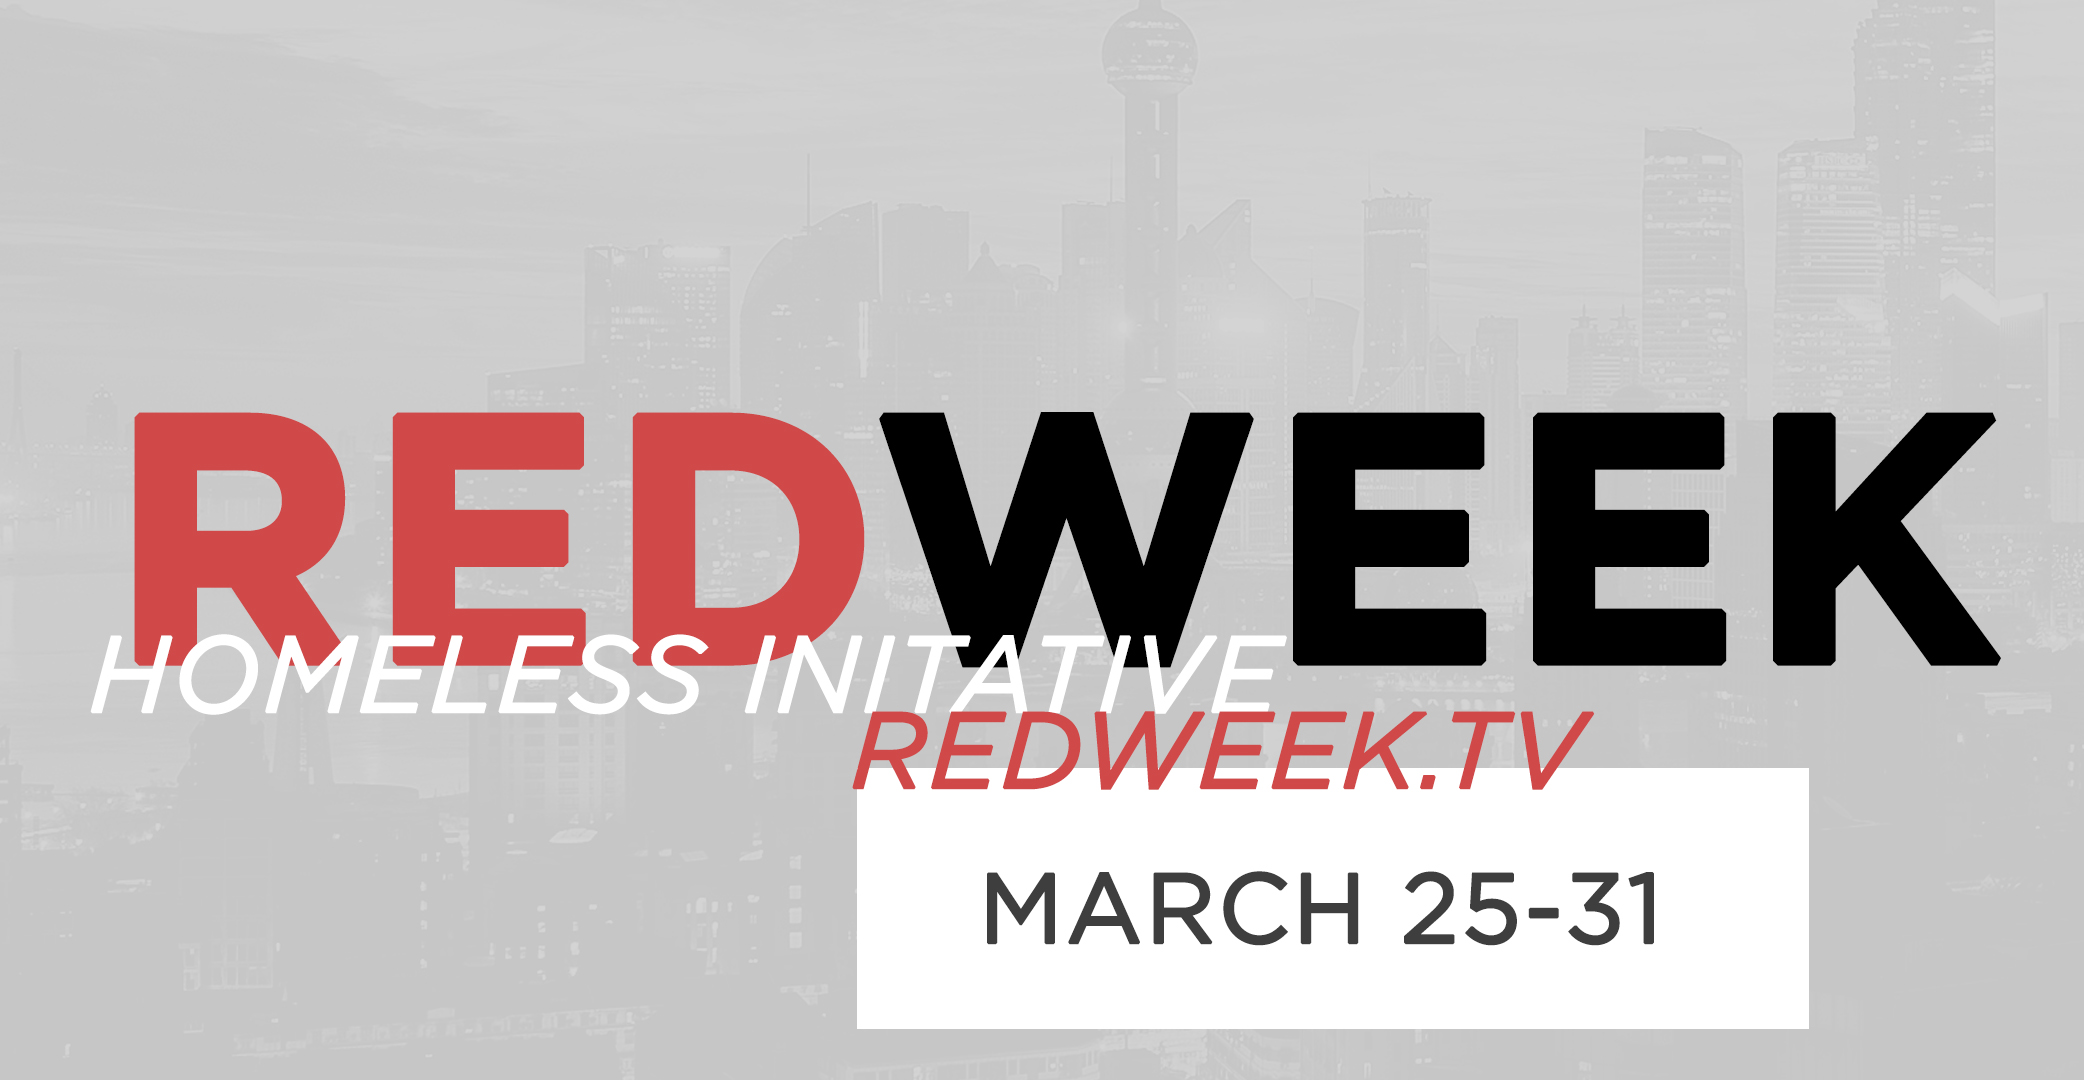 Redweekregistrations